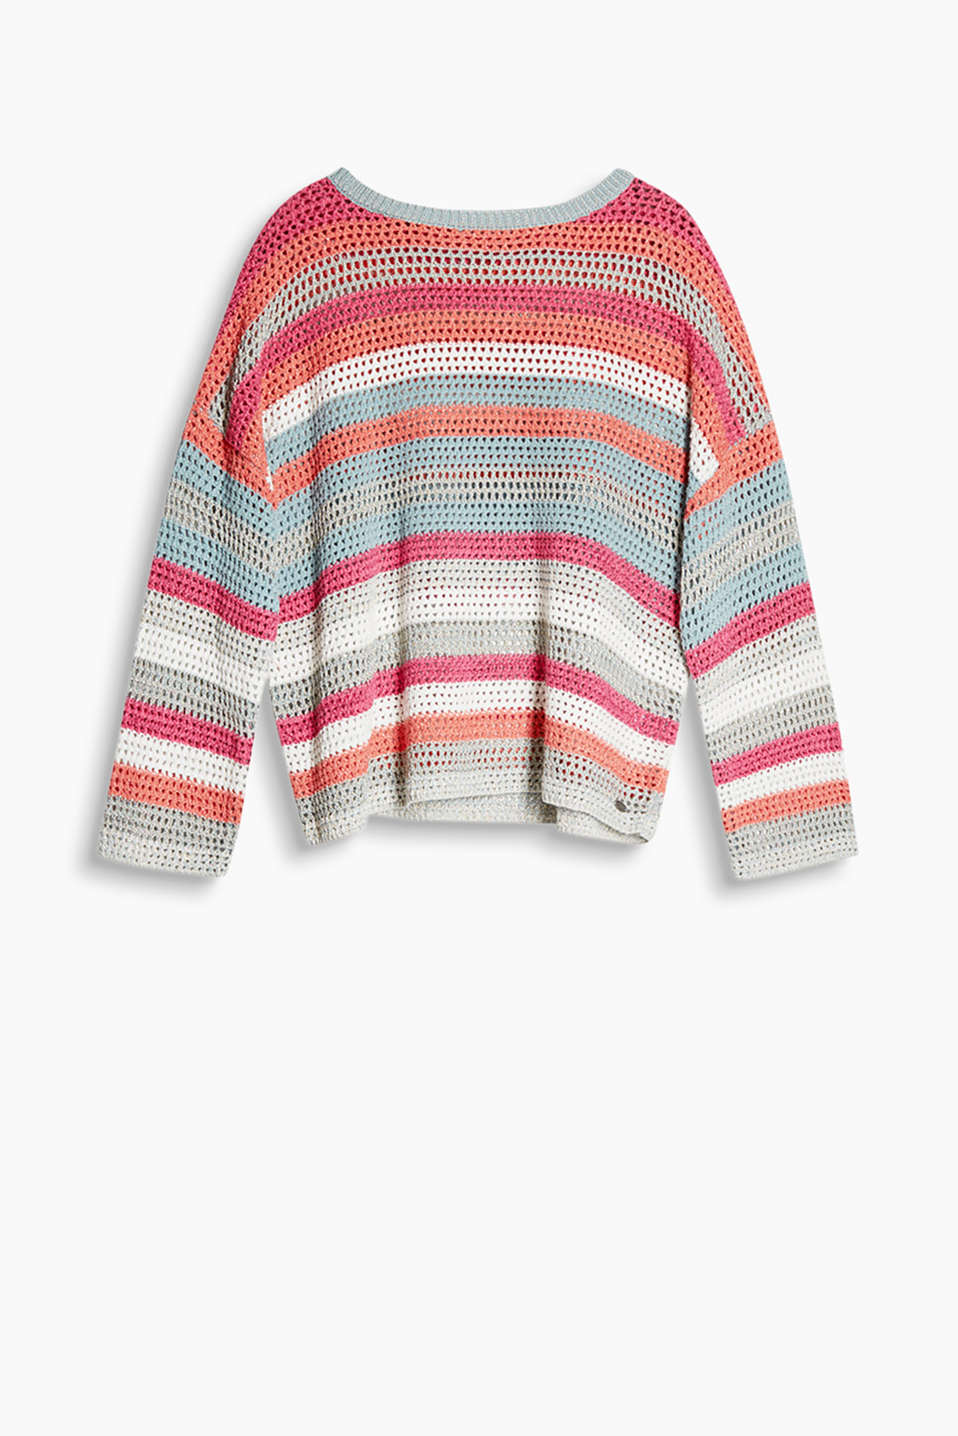 Oversized jumper made of colourful striped openwork knit yarn with lurex